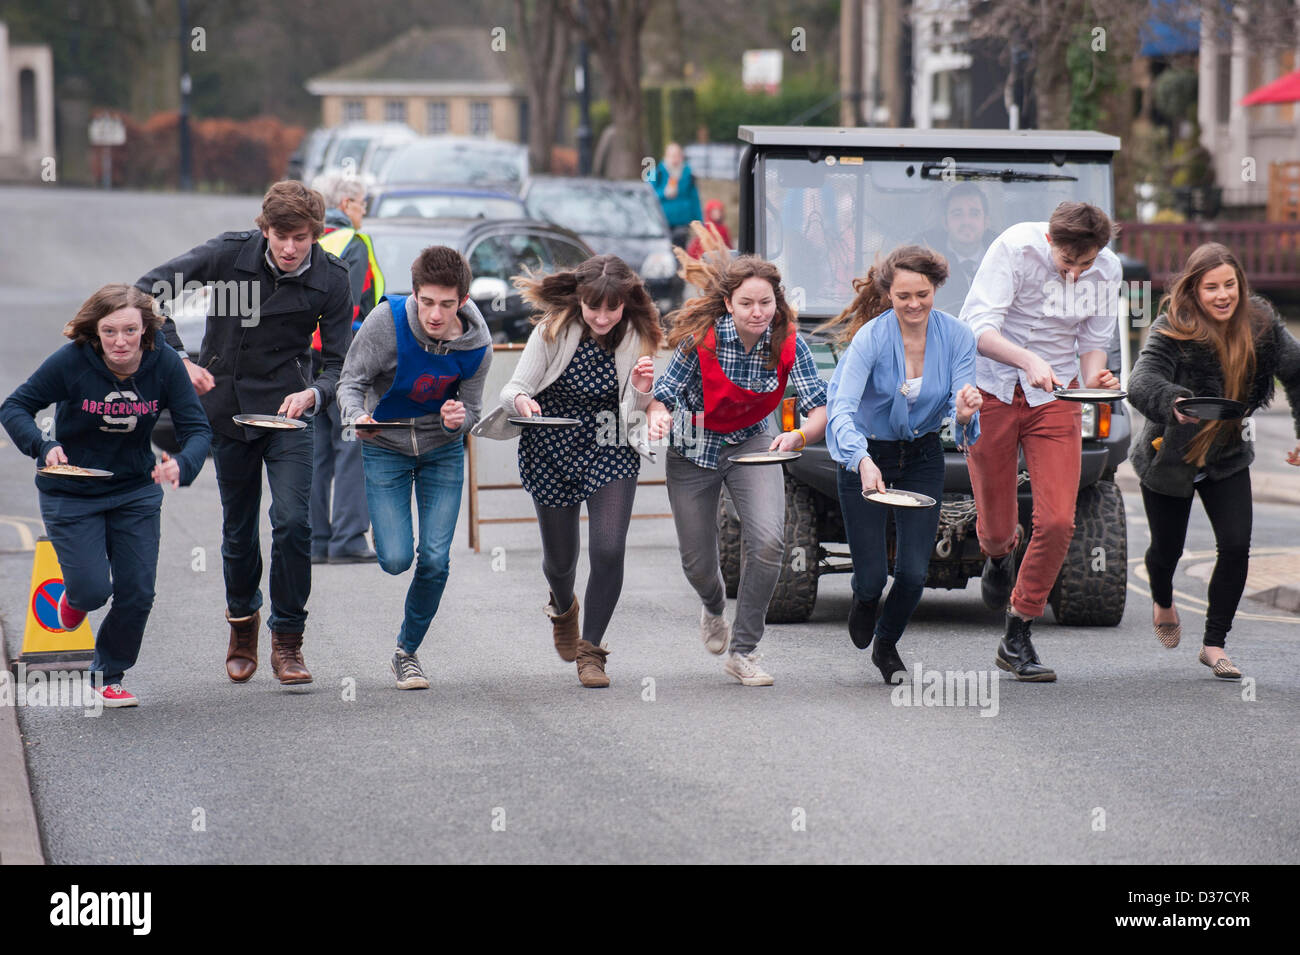 Competitors (male & female teenagers) with frying pans, taking part, running & racing in traditional Pancake Race Stock Photo